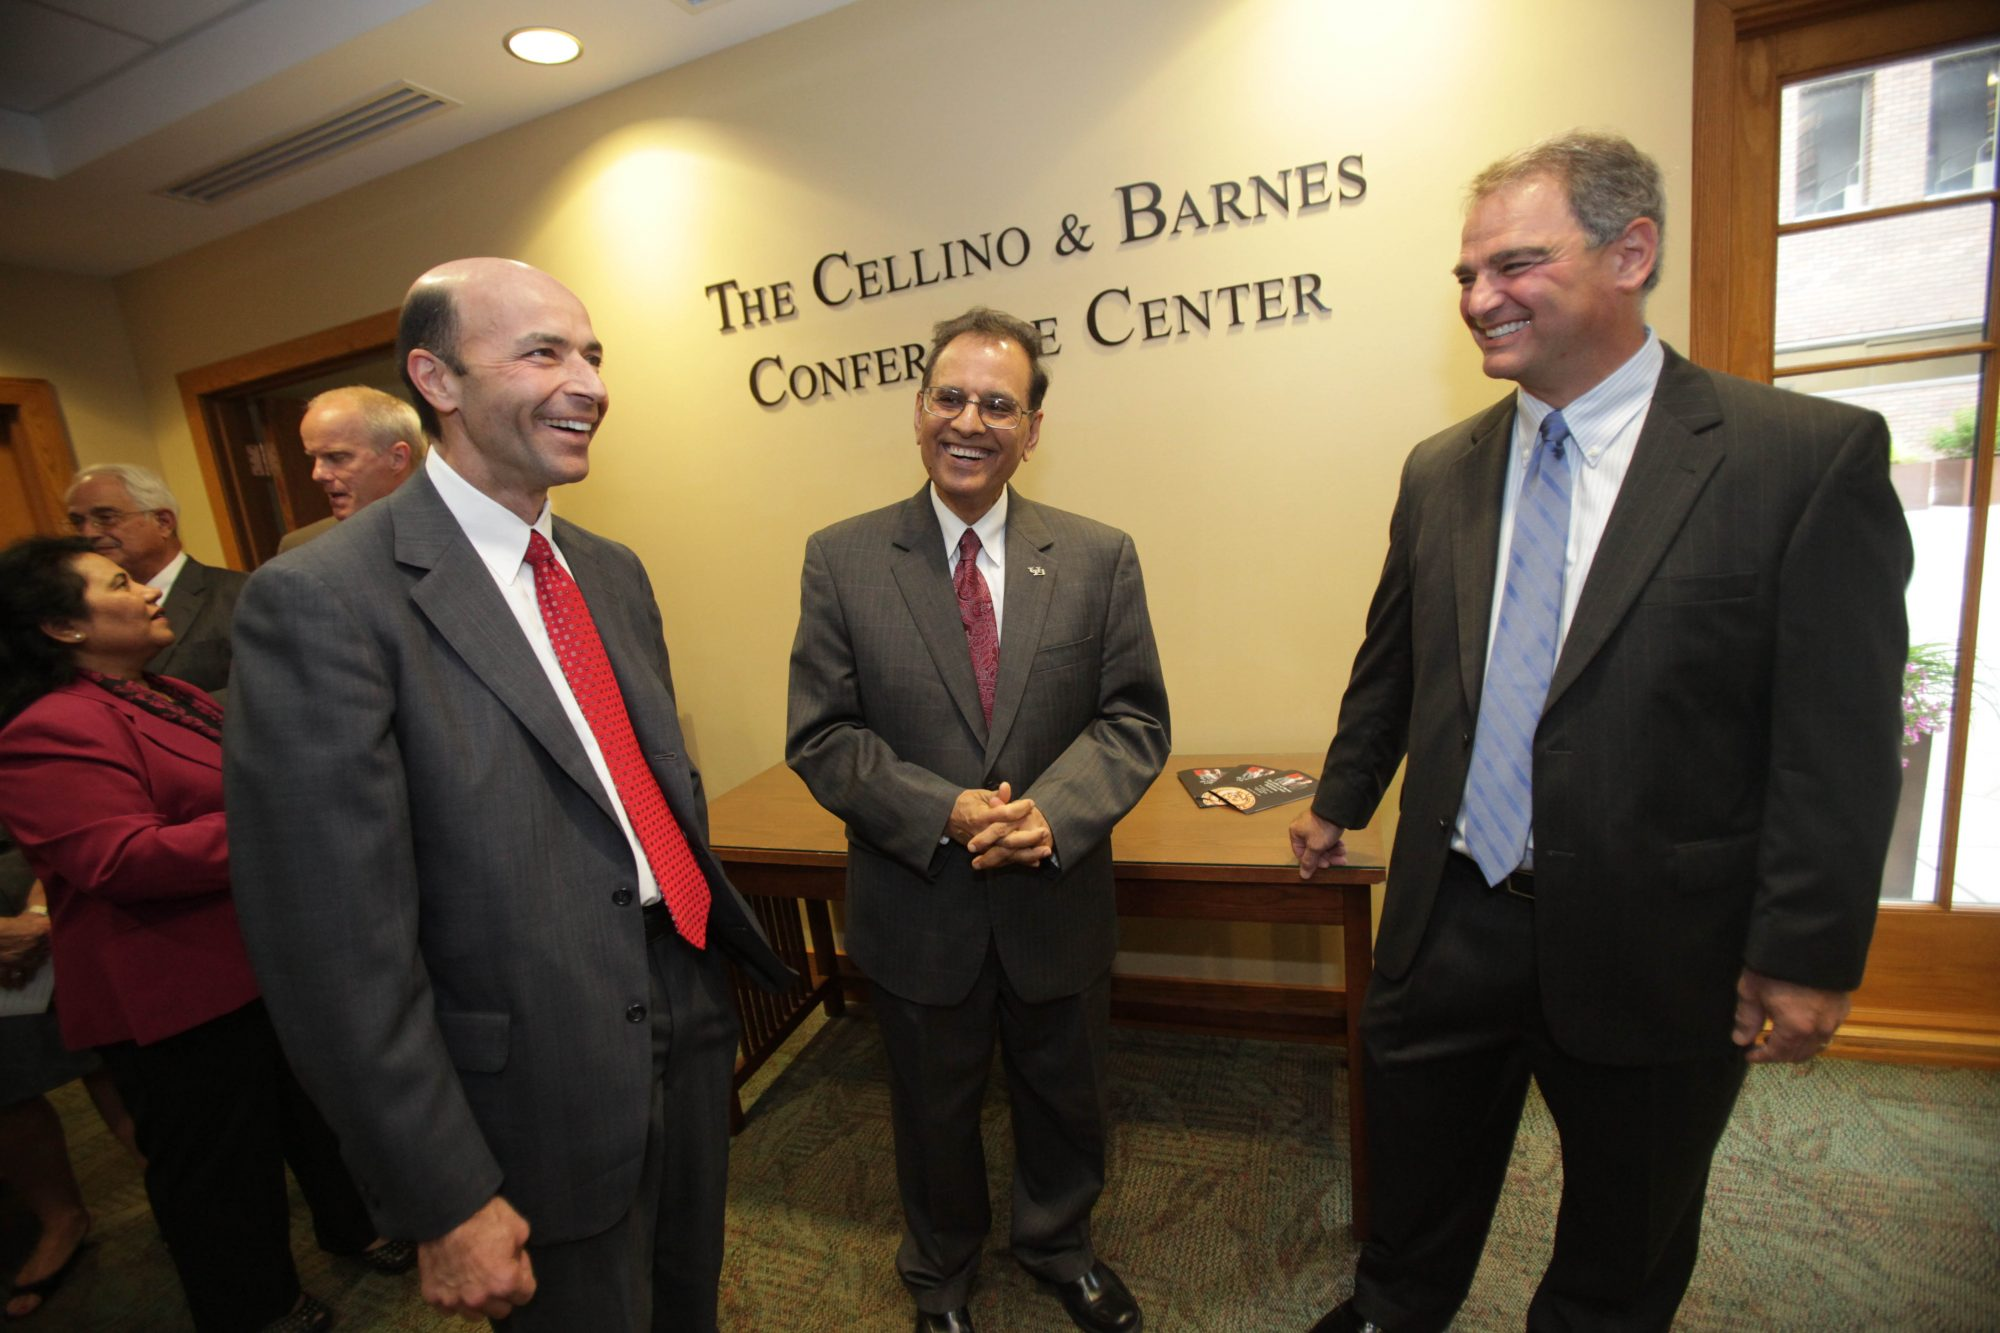 Cellino & Barnes dispute: Law firm hired Barnes' brother and